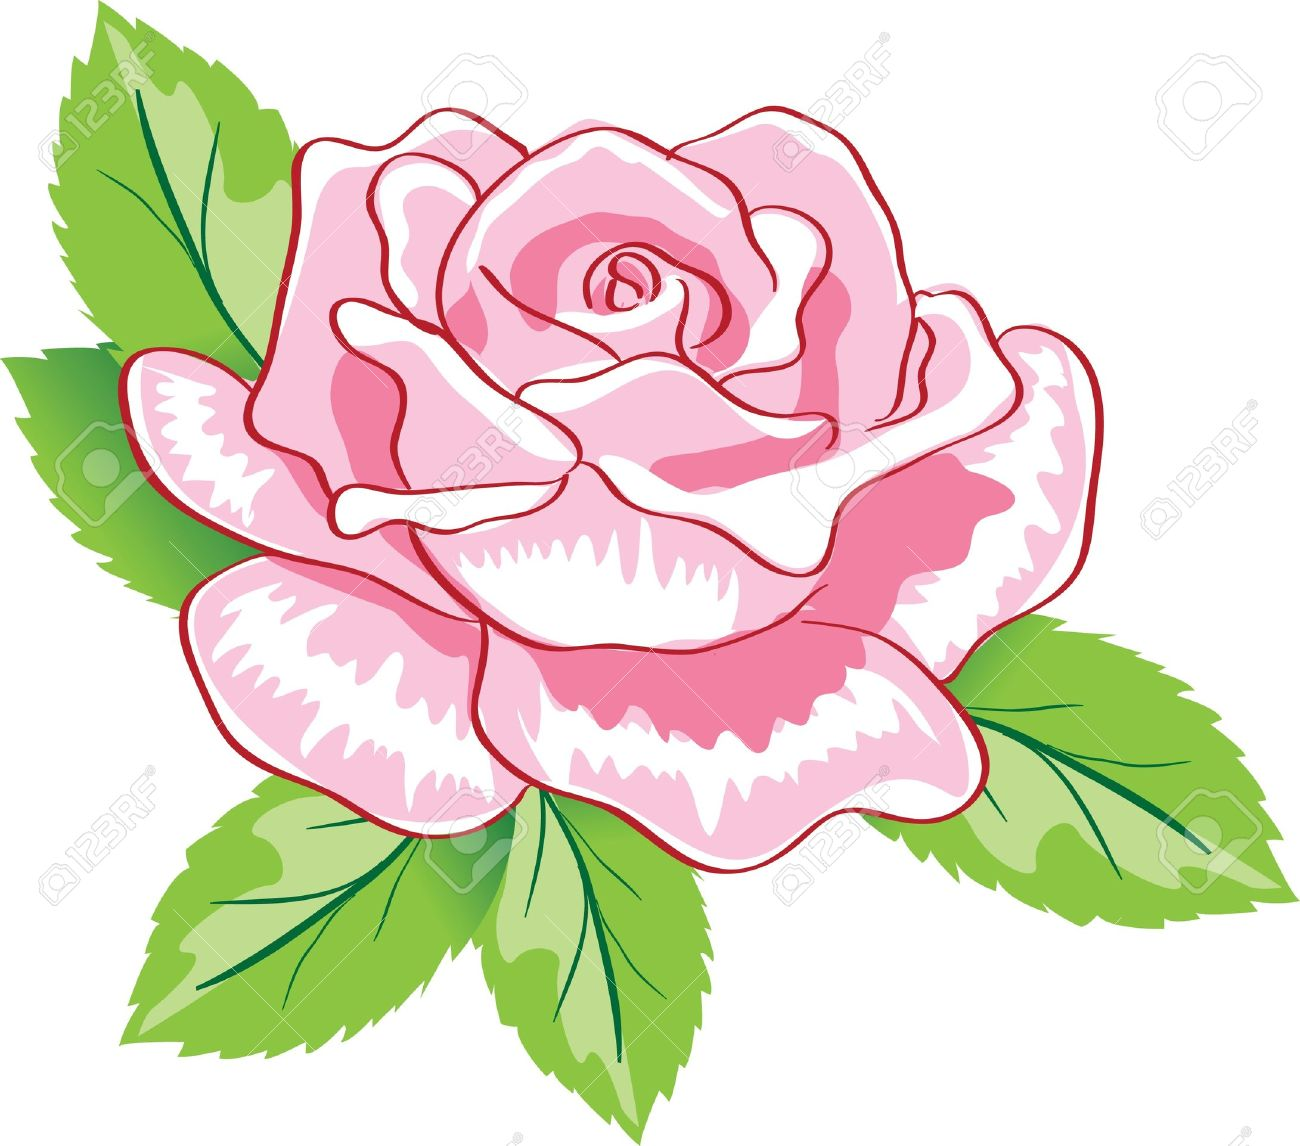 beauty pink rose background. Colorful vector illustration Stock Vector - 9343441